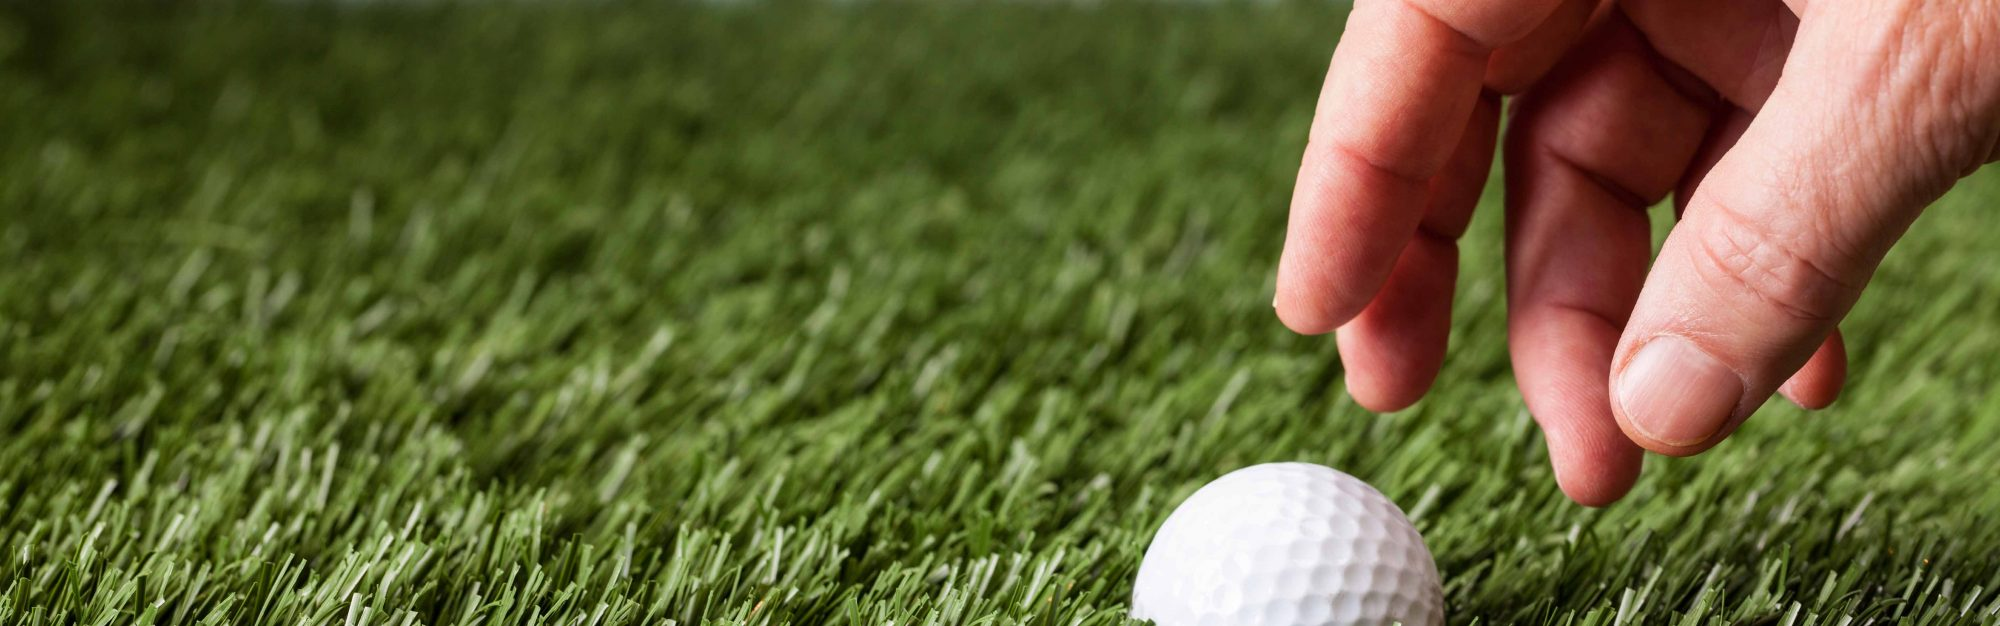 Rules of Golf explained: Do I need to mark my ball when taking relief?